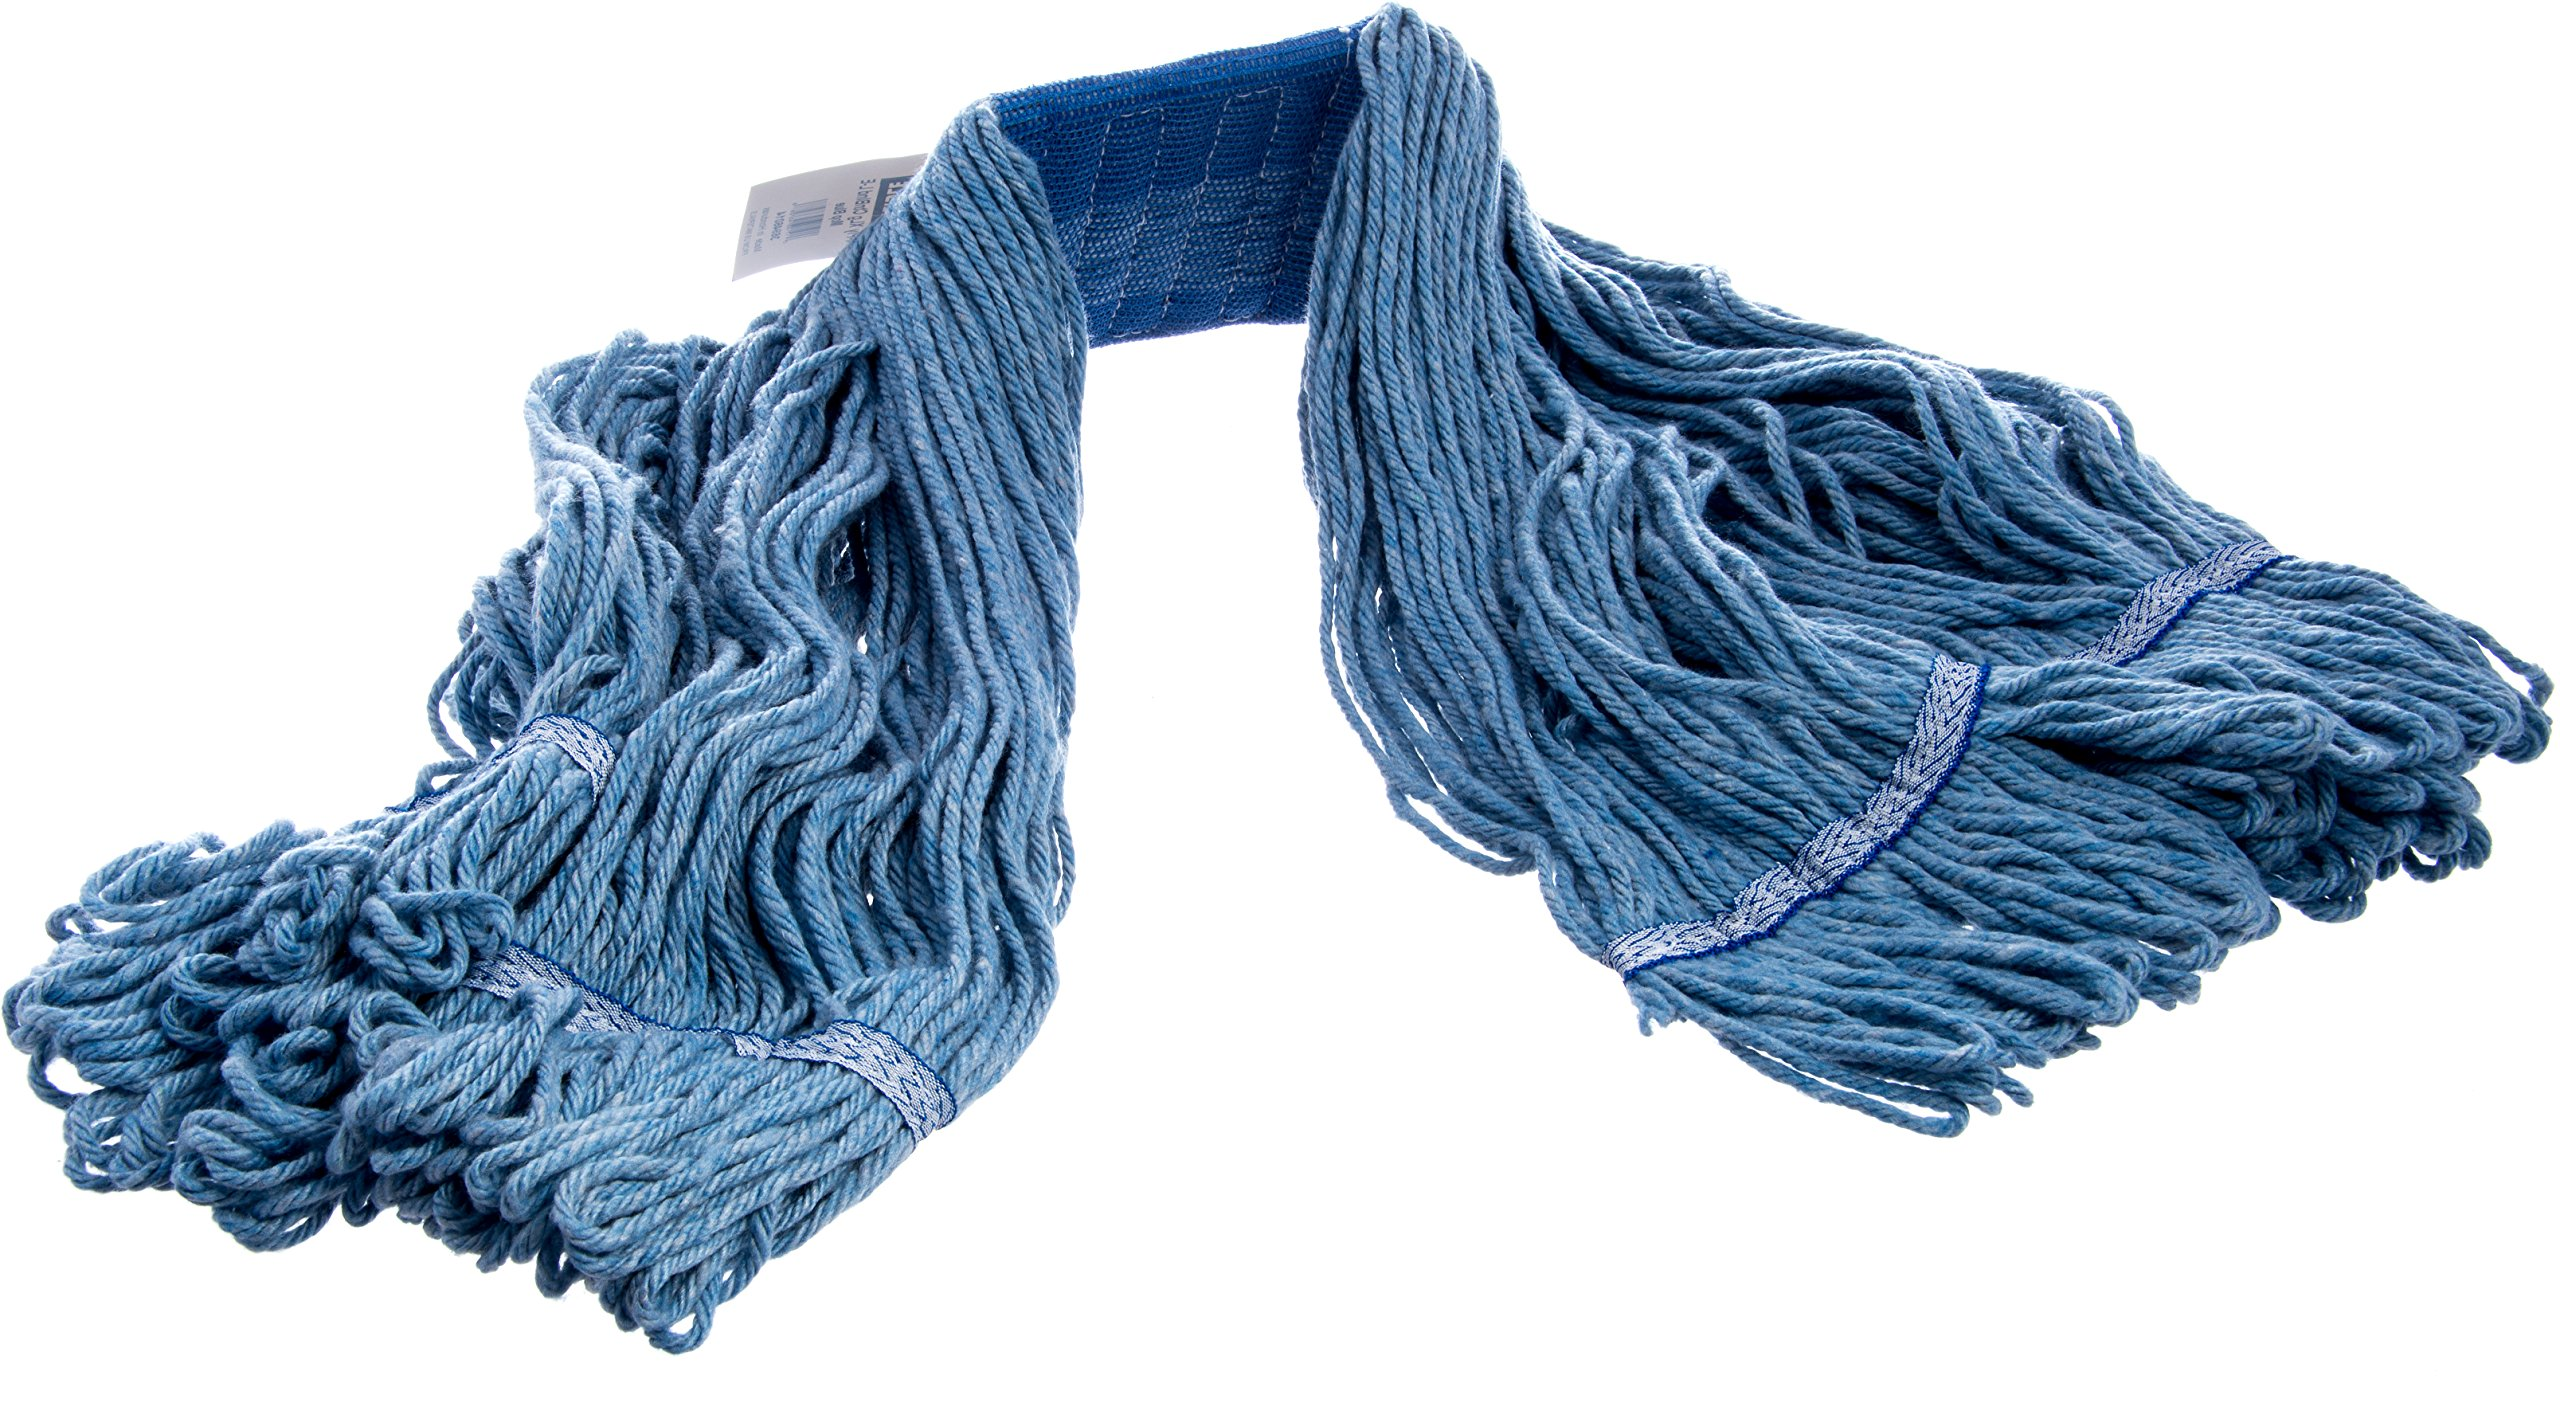 Carlisle 36946014 Looped-End Premium Mop Head With Blue Band, X-Large, Blue by Carlisle (Image #3)